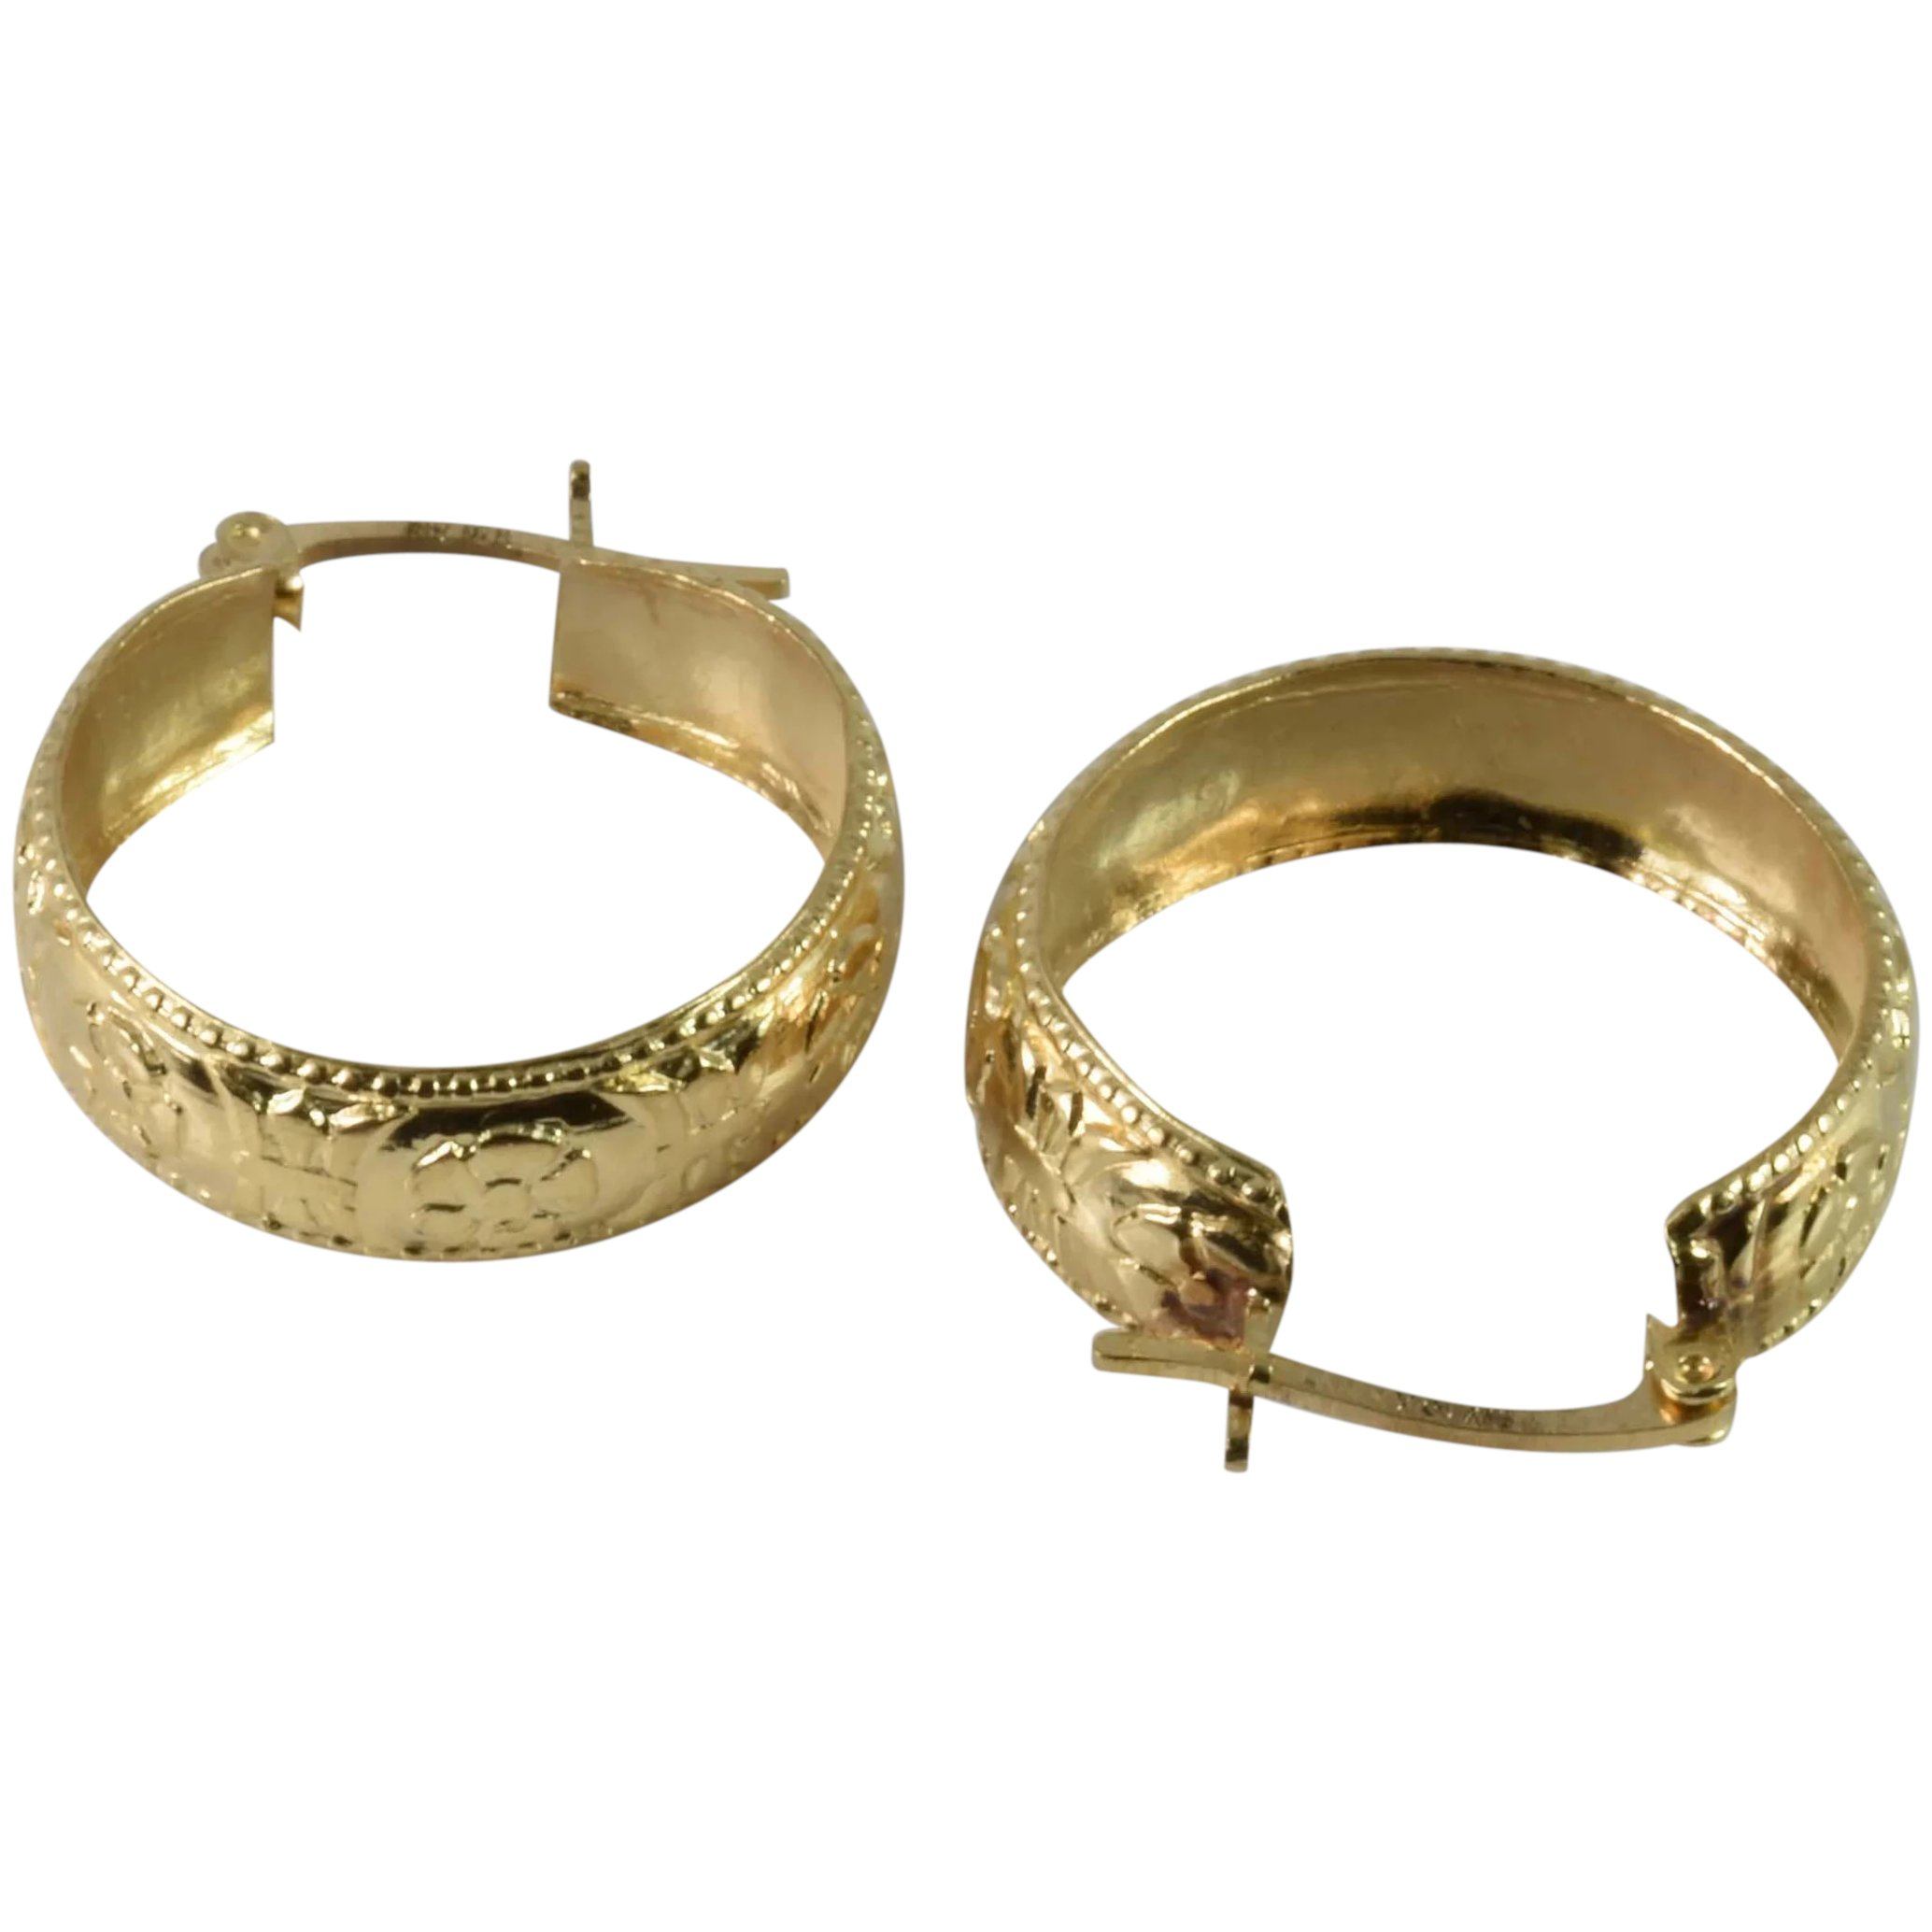 10KT 10K  Gold Etched Hoop Earrings Design Post Earrings Estate Find Stamped Vintage Fine Jewelry Gift Ideas Mothers Day